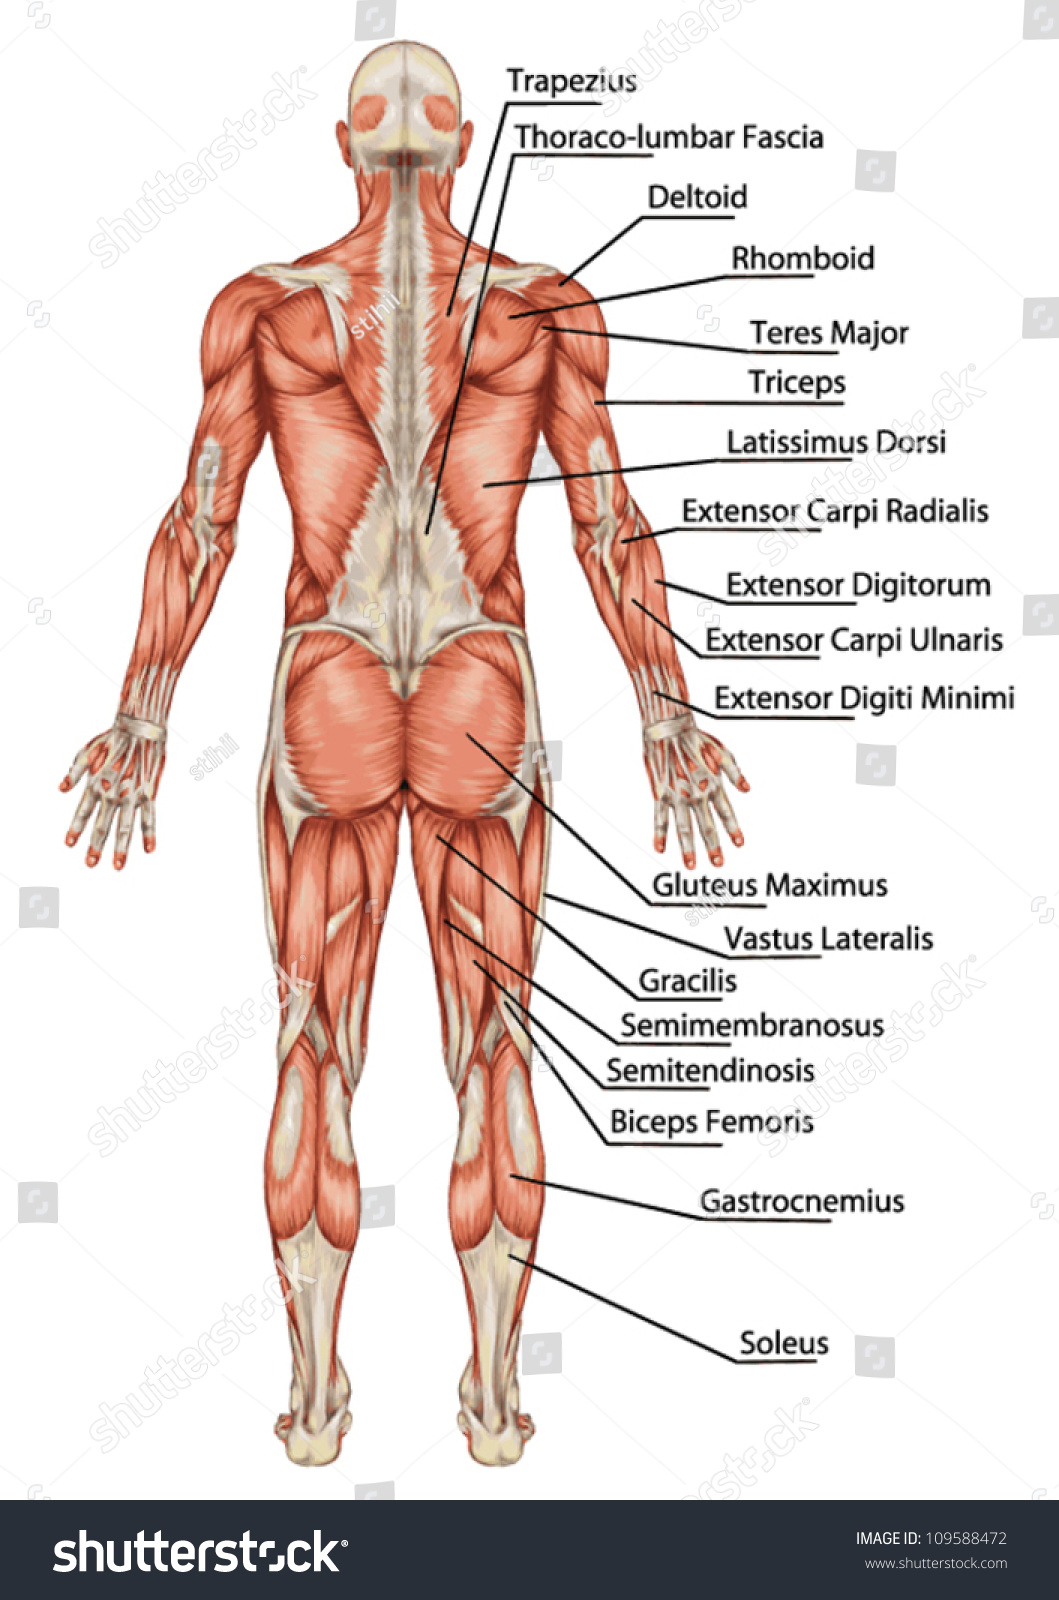 Anatomy Male Muscular System Posterior View Stock Vector 109588472 ...